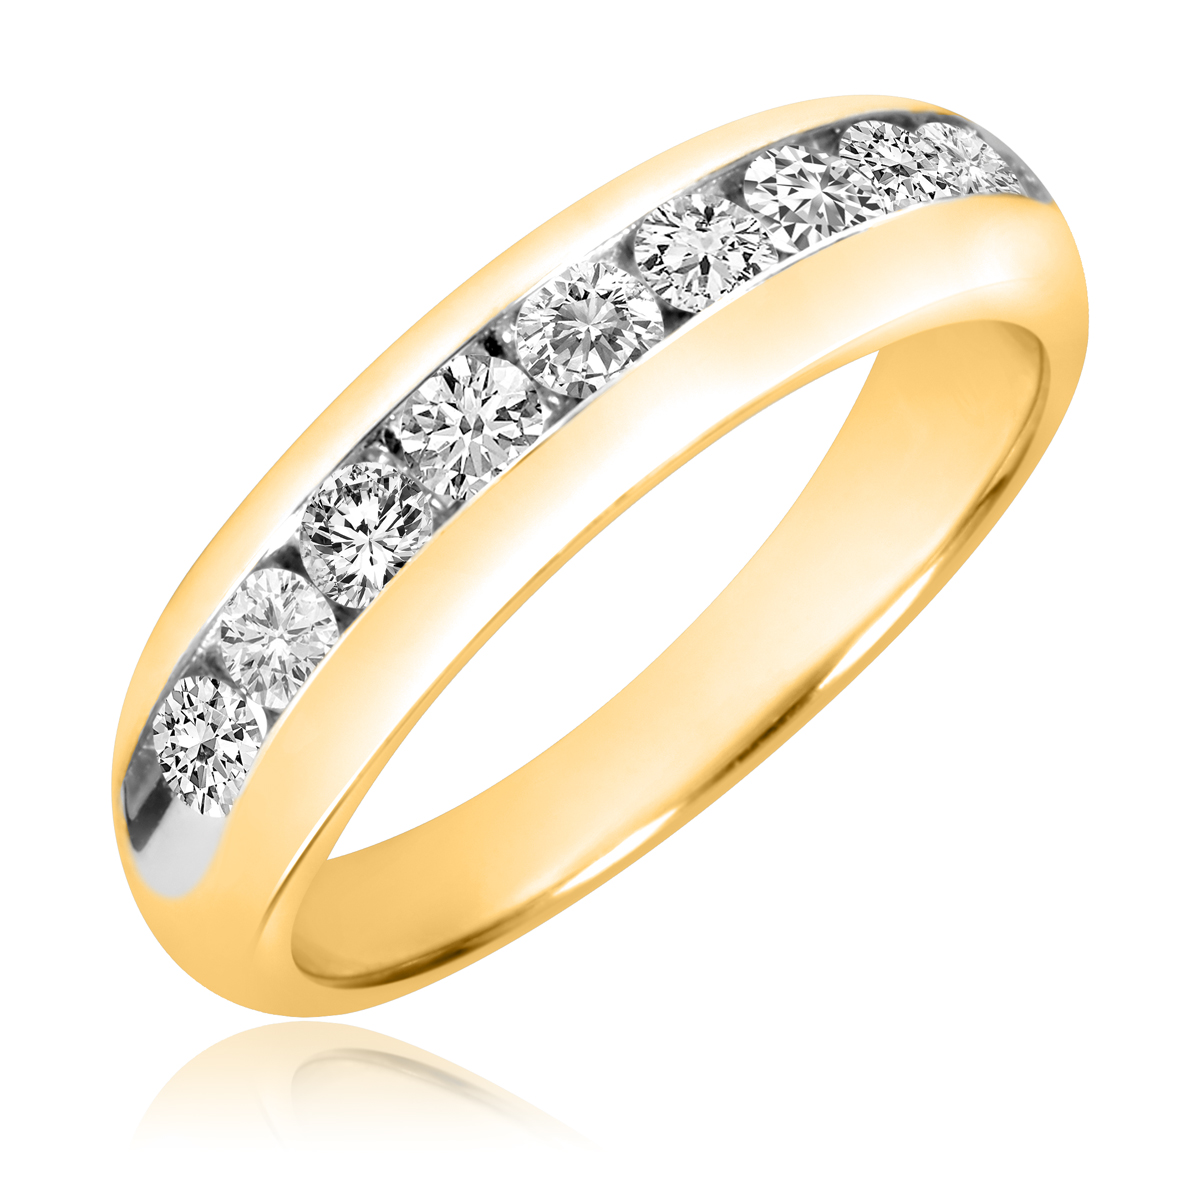 1 carat t w diamond men 39 s wedding band 10k yellow gold for Men s 1 carat diamond wedding bands